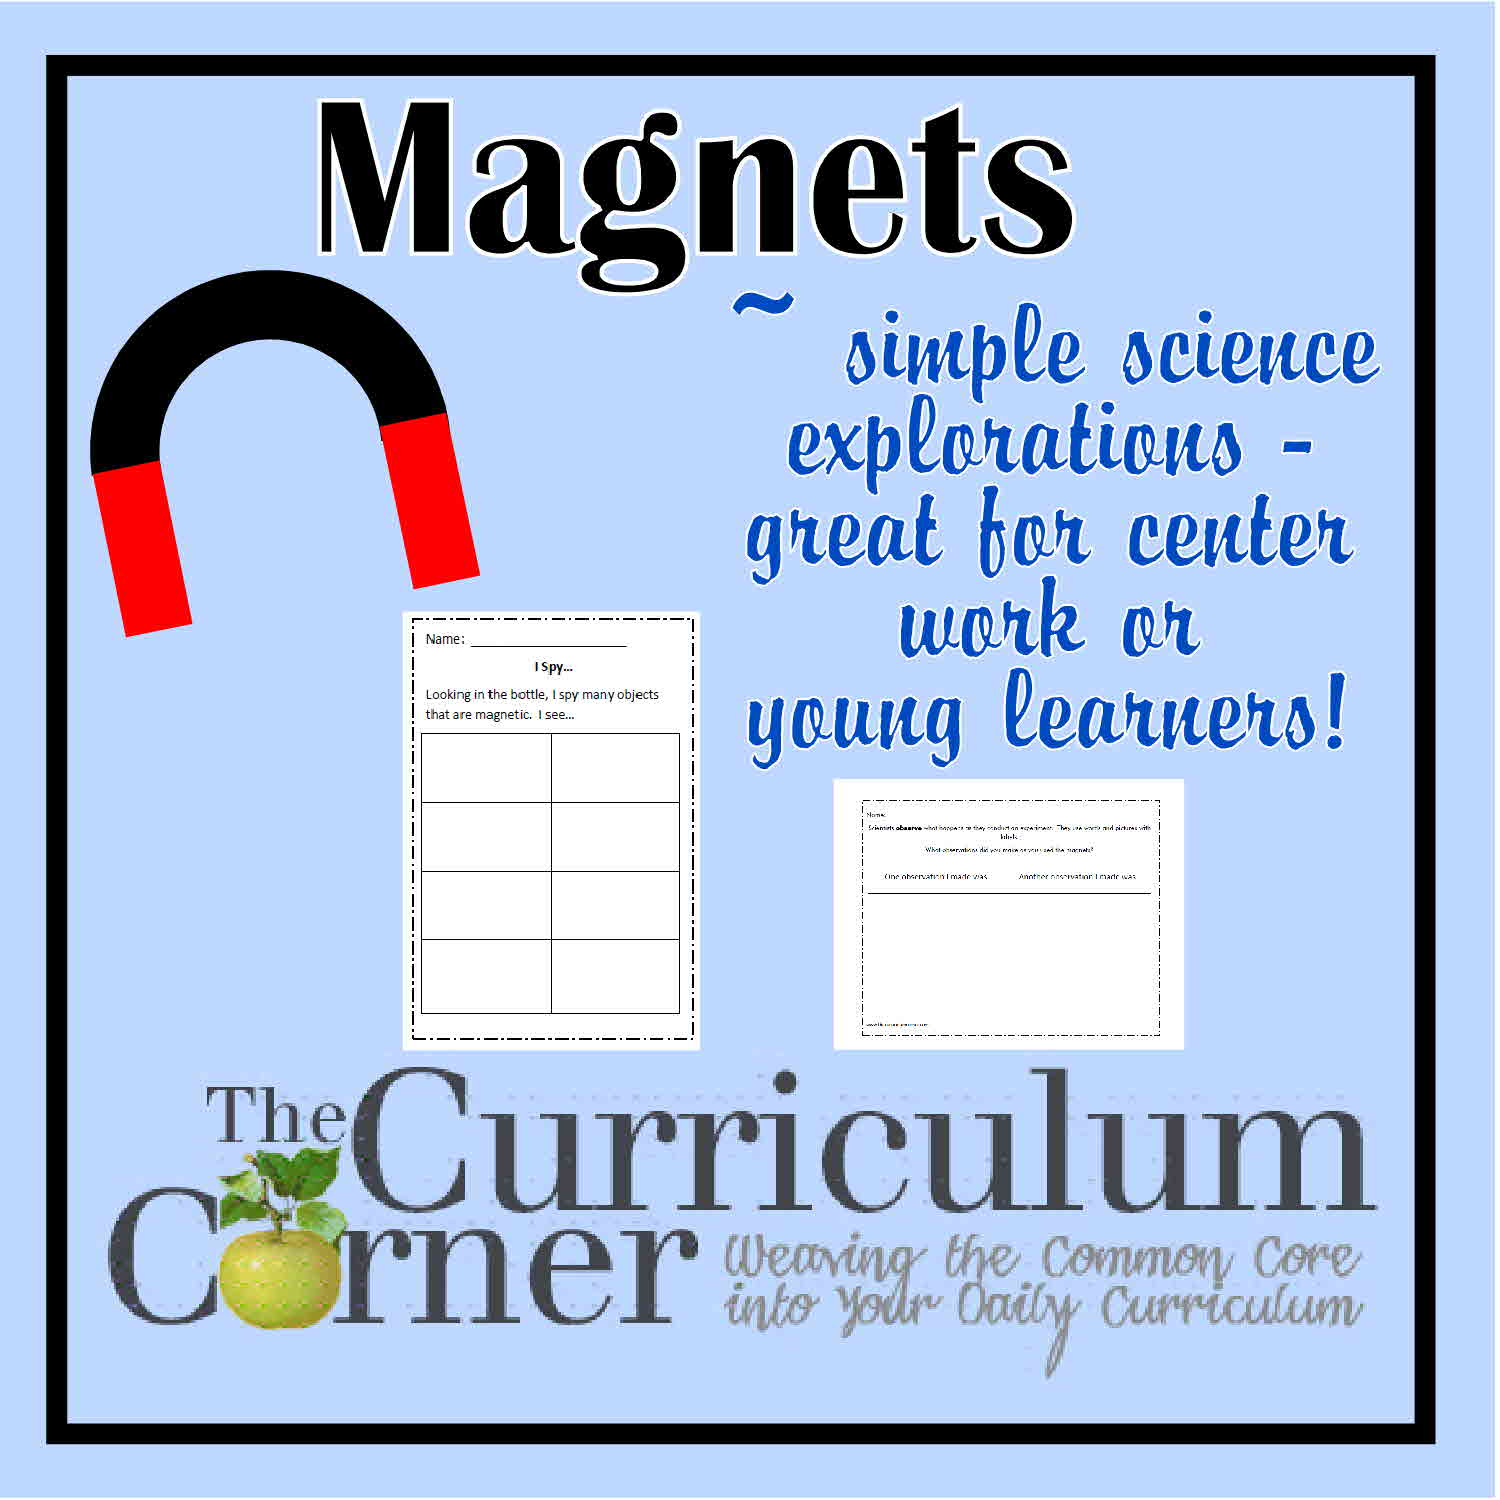 Magnets Worksheets 2nd Grade